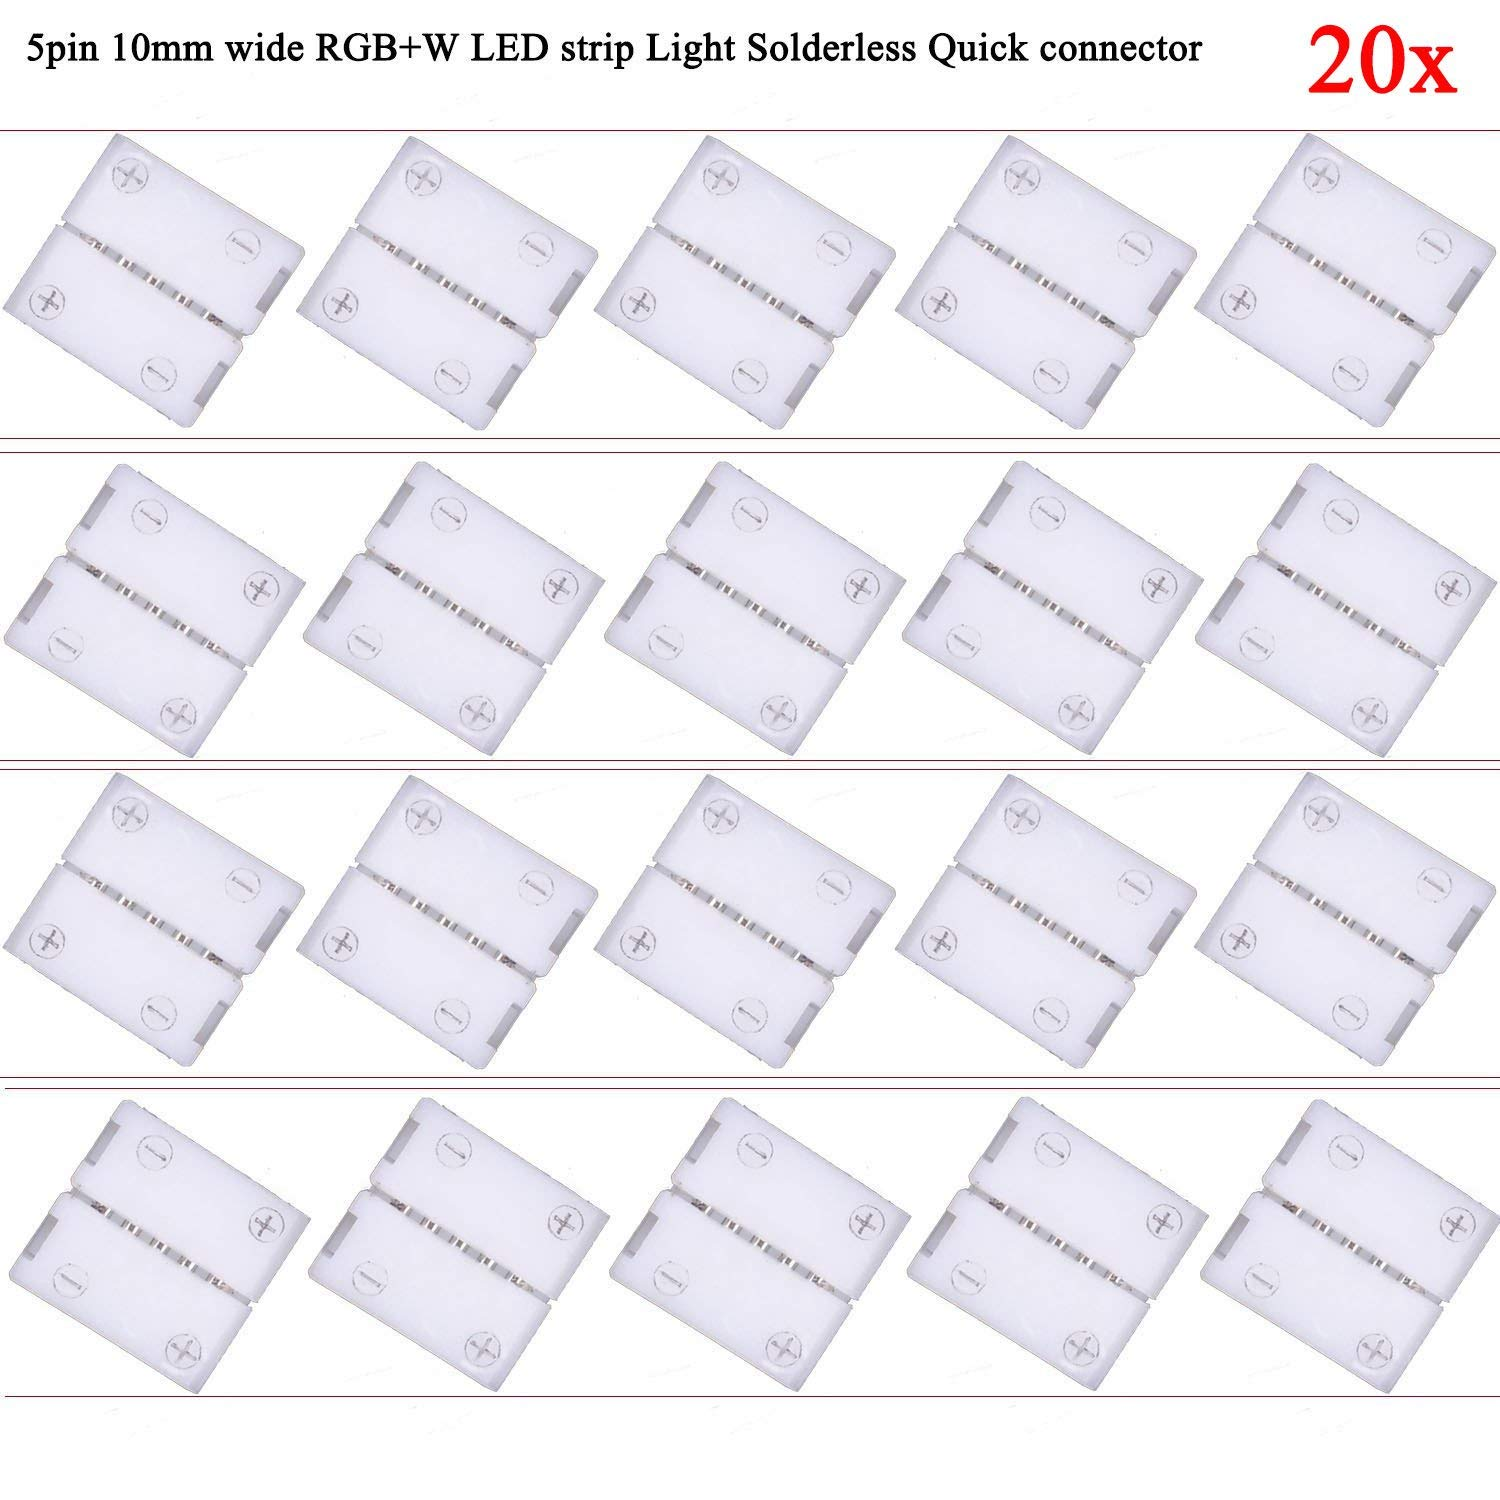 Kabenjee 20x 5pin RGBW LED Ribbon Light Solderless Clip Mount Connector,5-conductor RGBWW LED Strip Light Snap Down Connector for 10mm Wide SMD 5050 RGBW LED Tape Light RGBW LED Band Light(20 in 1set)